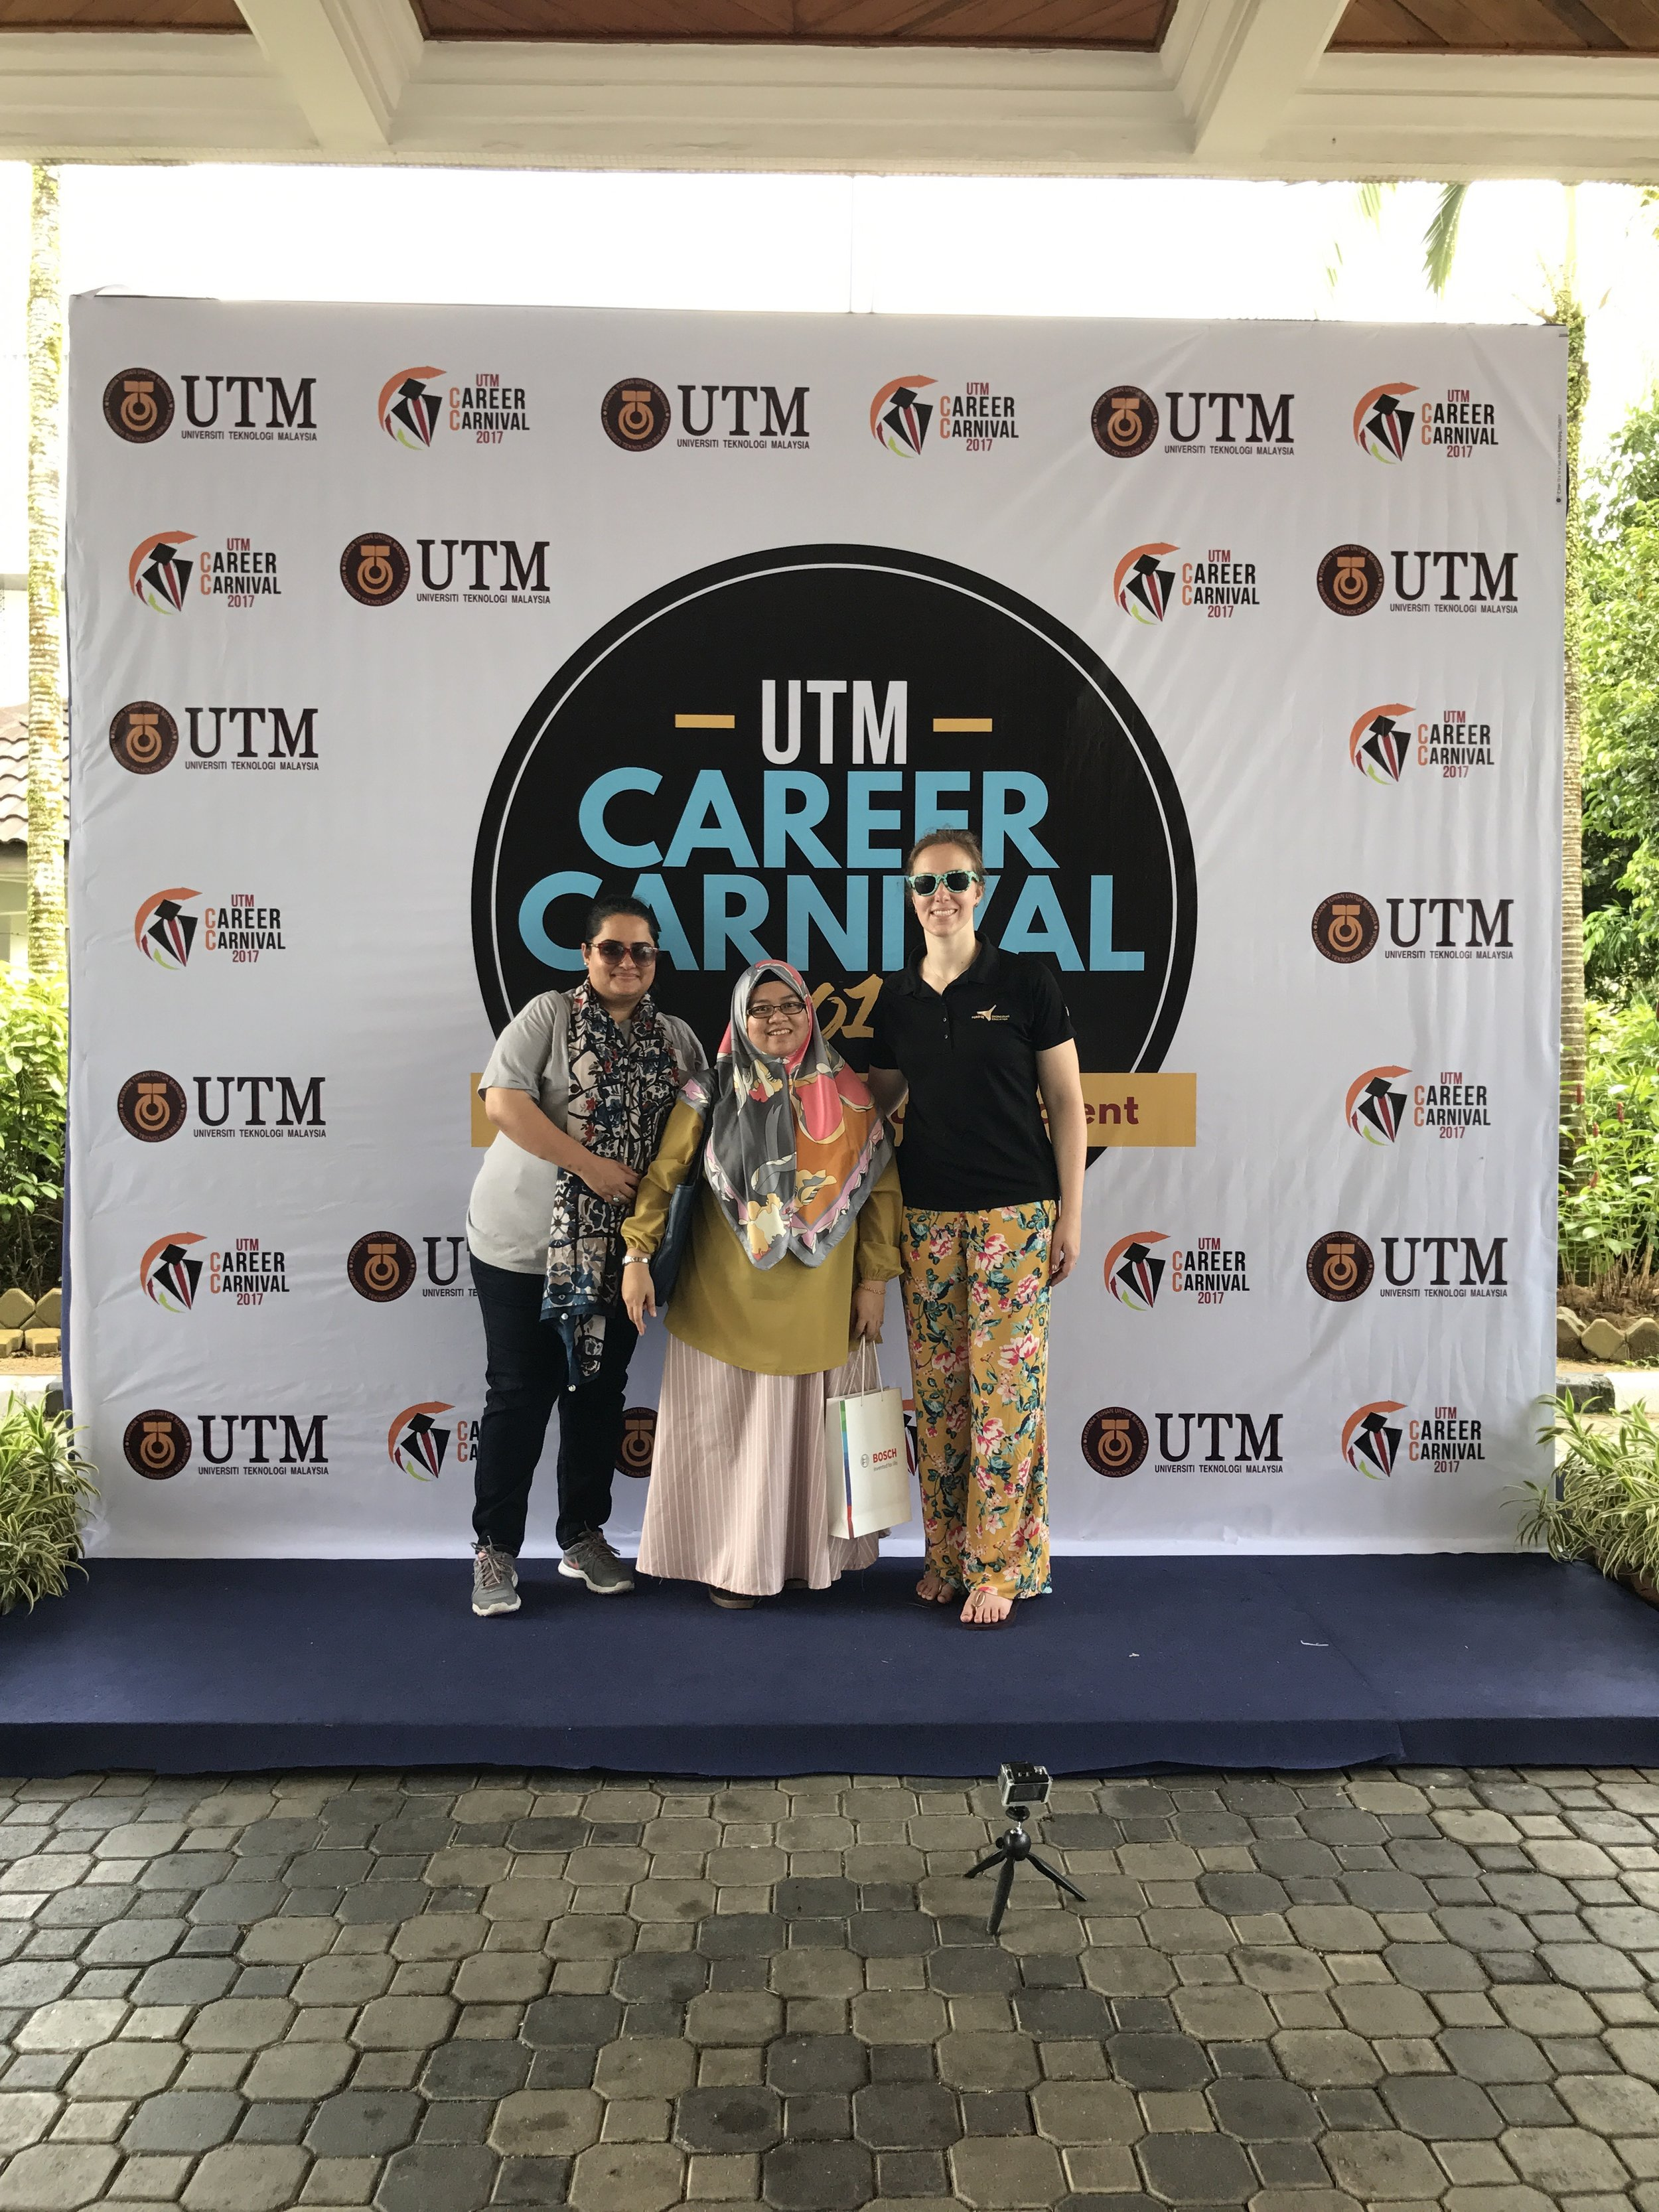 We visited the career carnival taking place at UTM while we were there for the project